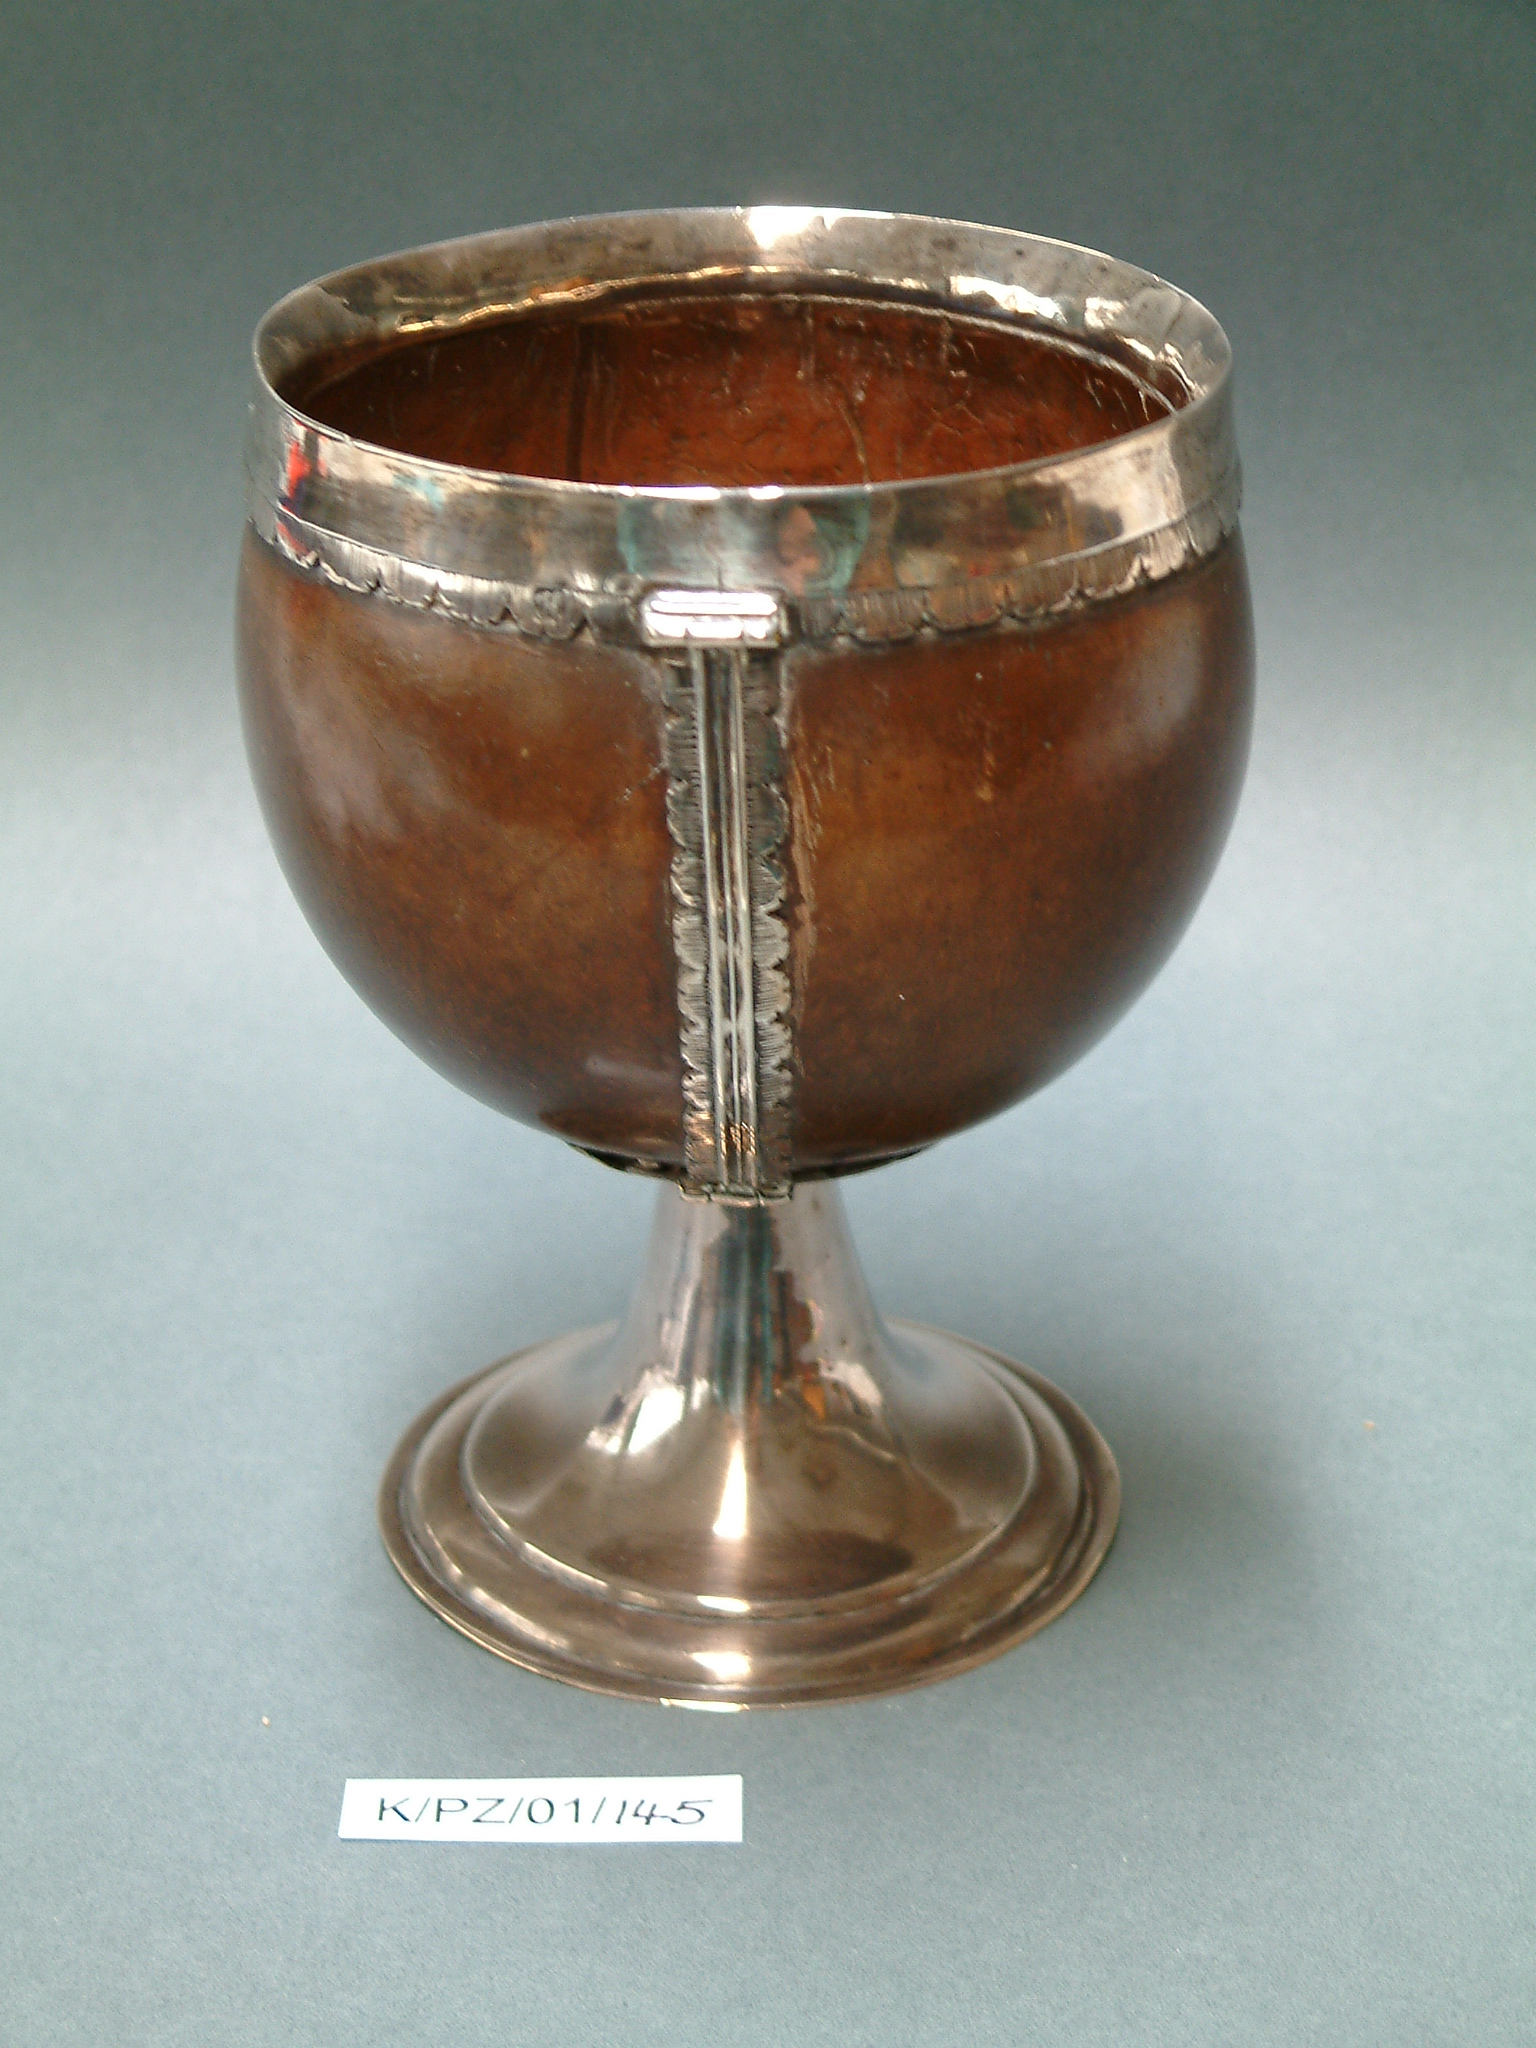 Coconut cup of Charles Armitage Brown; Image courtesy of Keats House, City of London